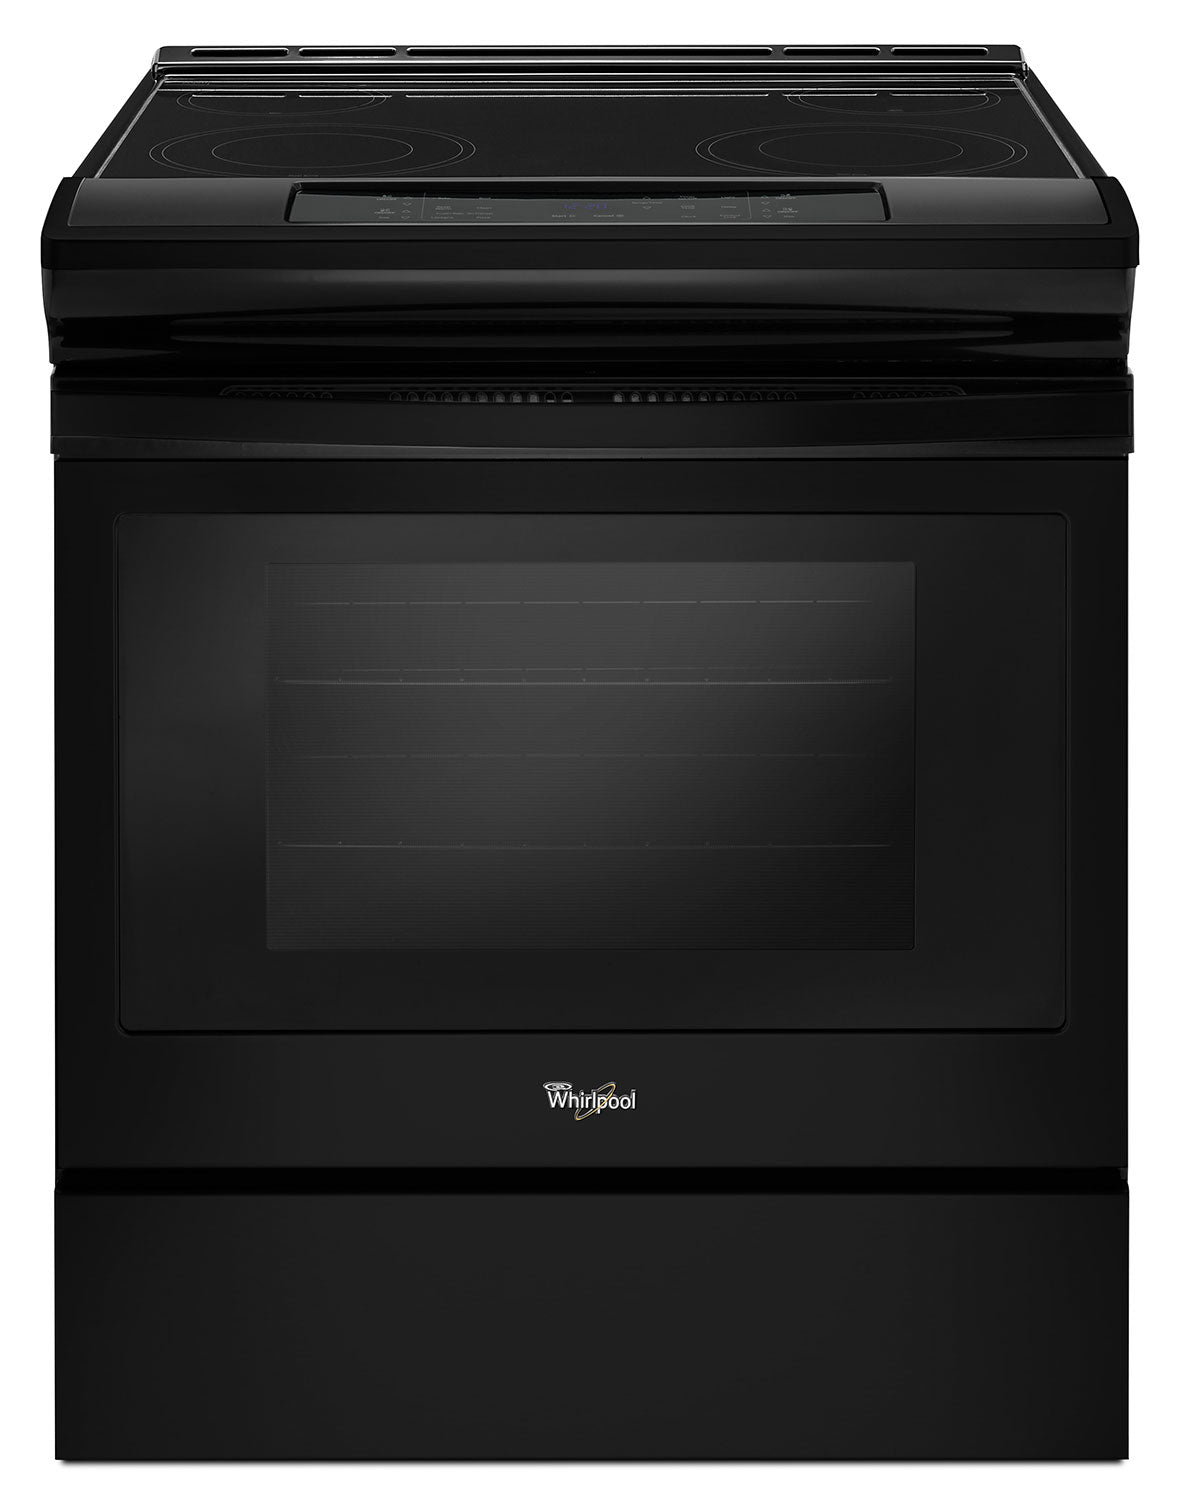 Whirlpool 48 Cu Ft Guided Electric Front Control Range With The